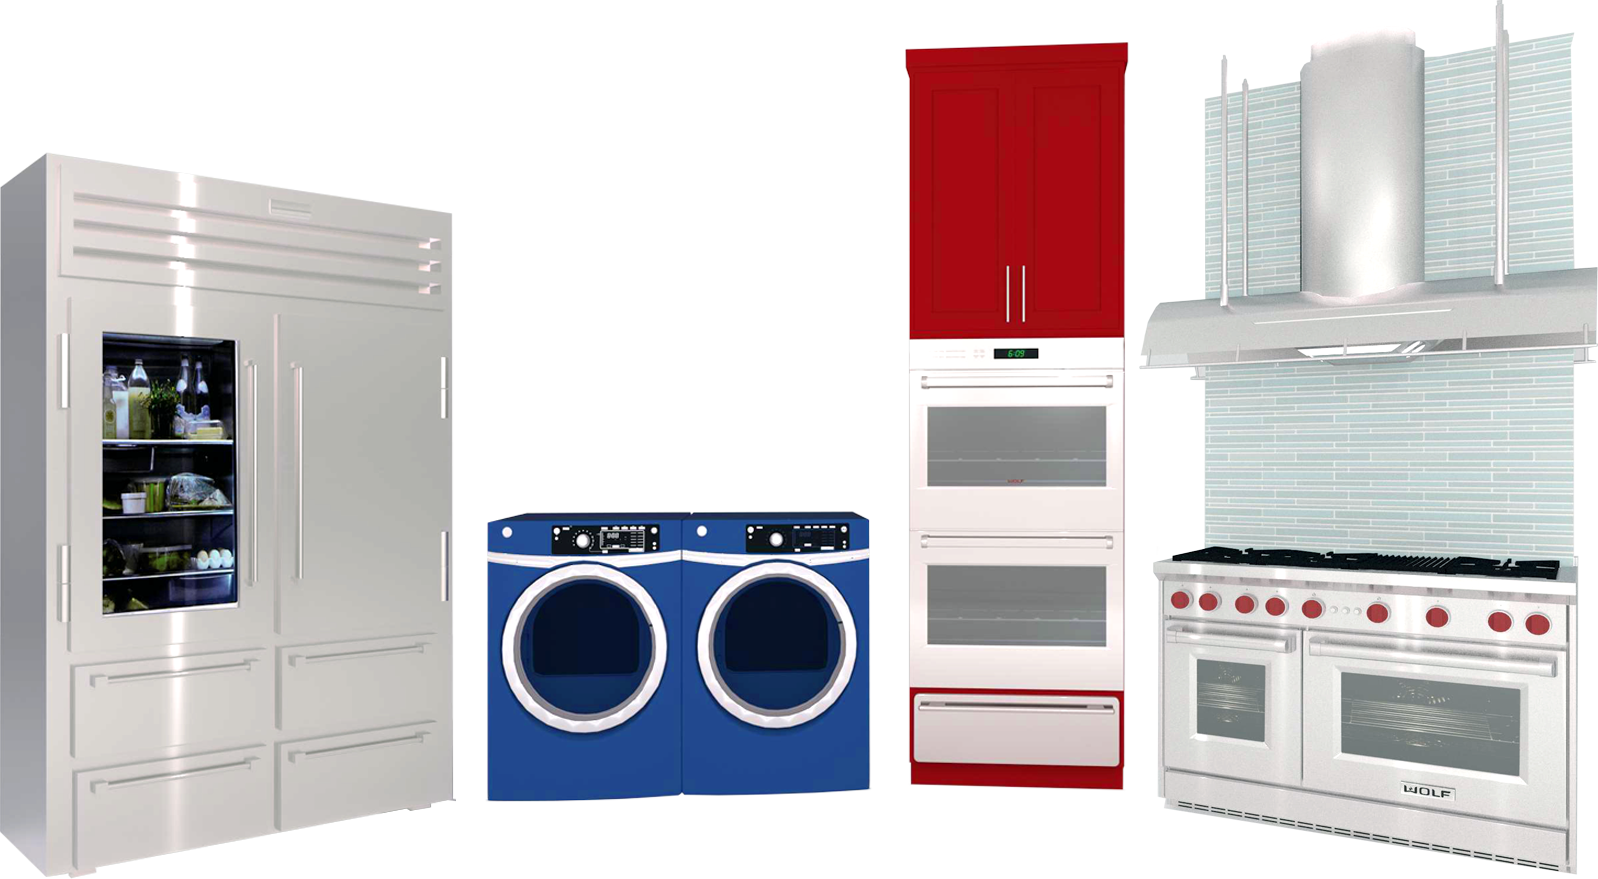 A collection of 3D Library appliances including a refrigerator, washer/dryer combo, built-in oven, and range hood over a stove